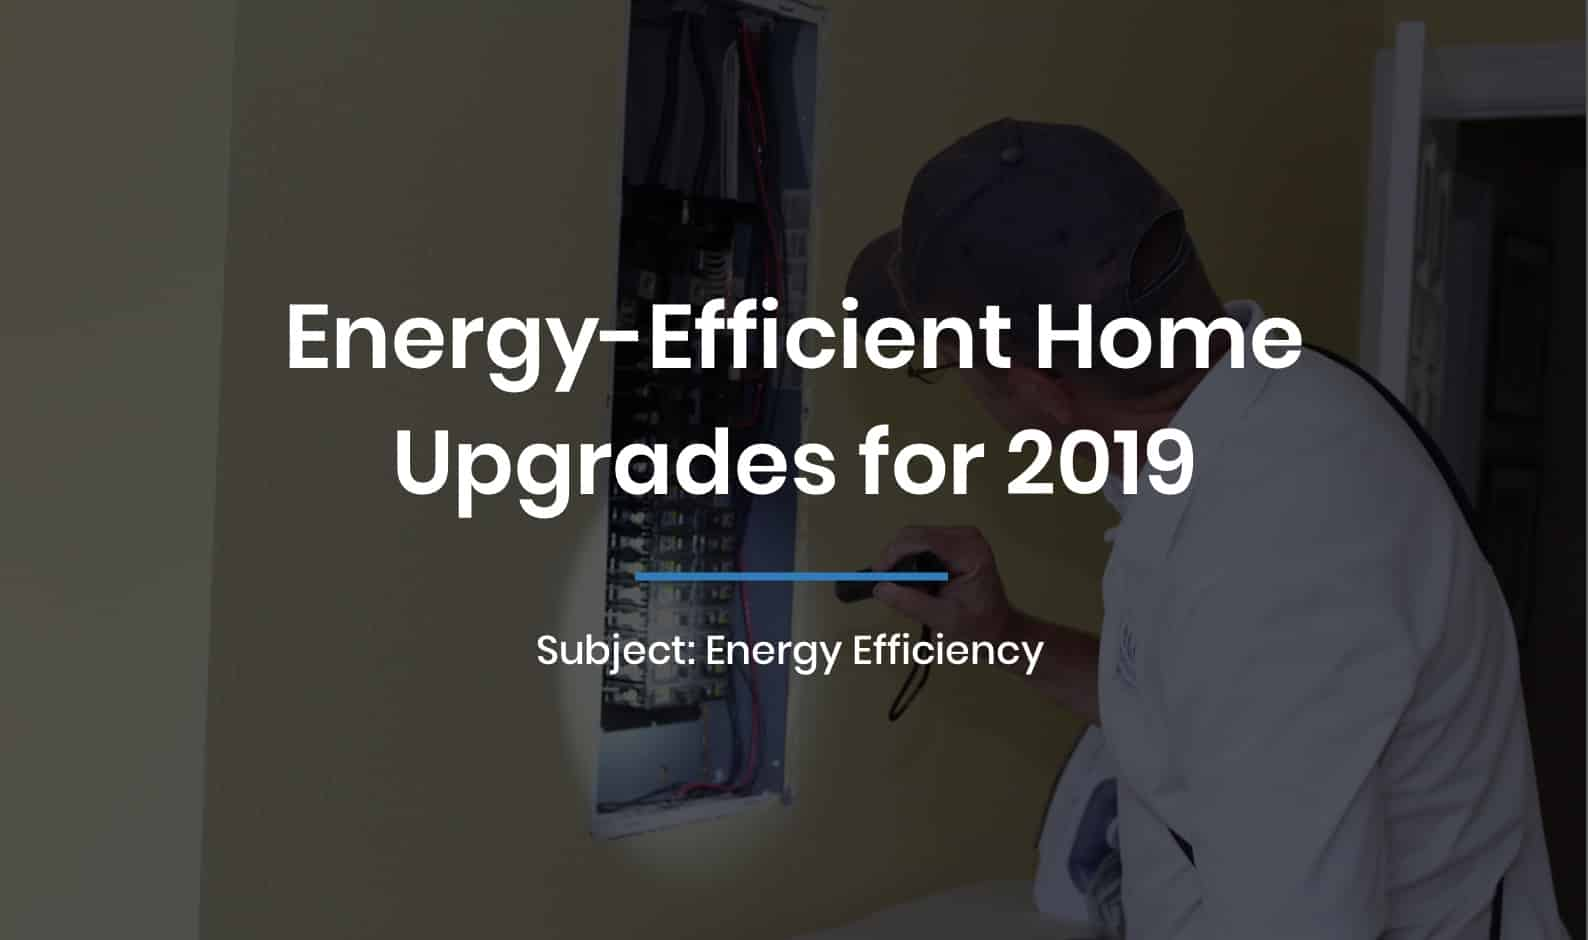 Energy-Efficient Home Upgrades for 2019